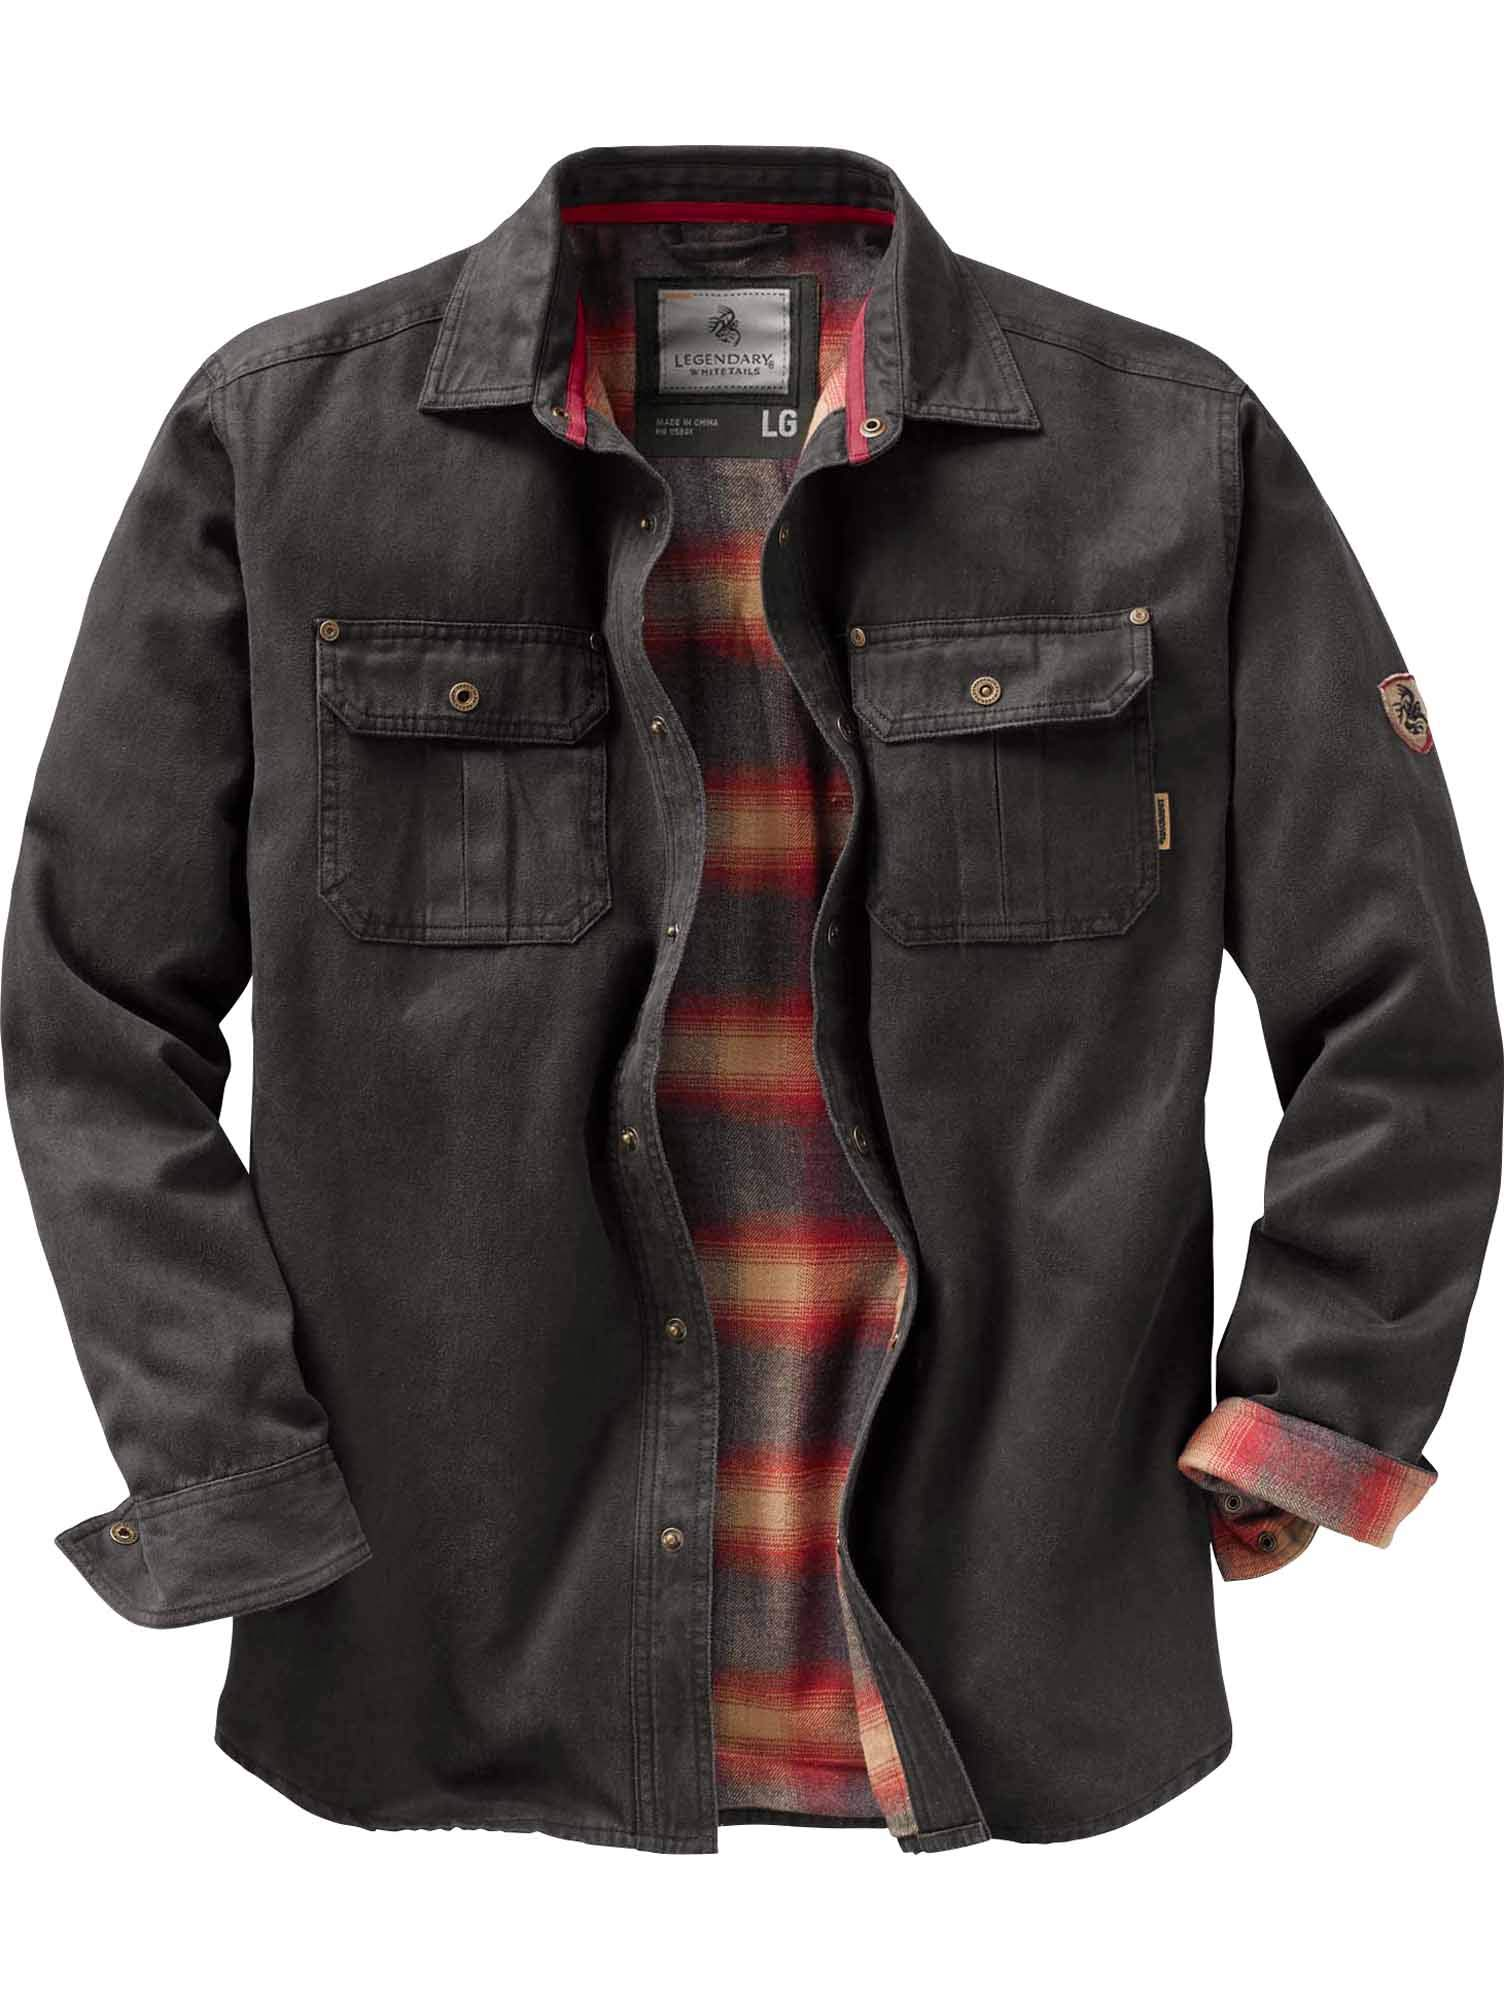 Legendary Whitetails Mens Journeyman Rugged Shirt Jacket, Tarmac, Large by Legendary Whitetails